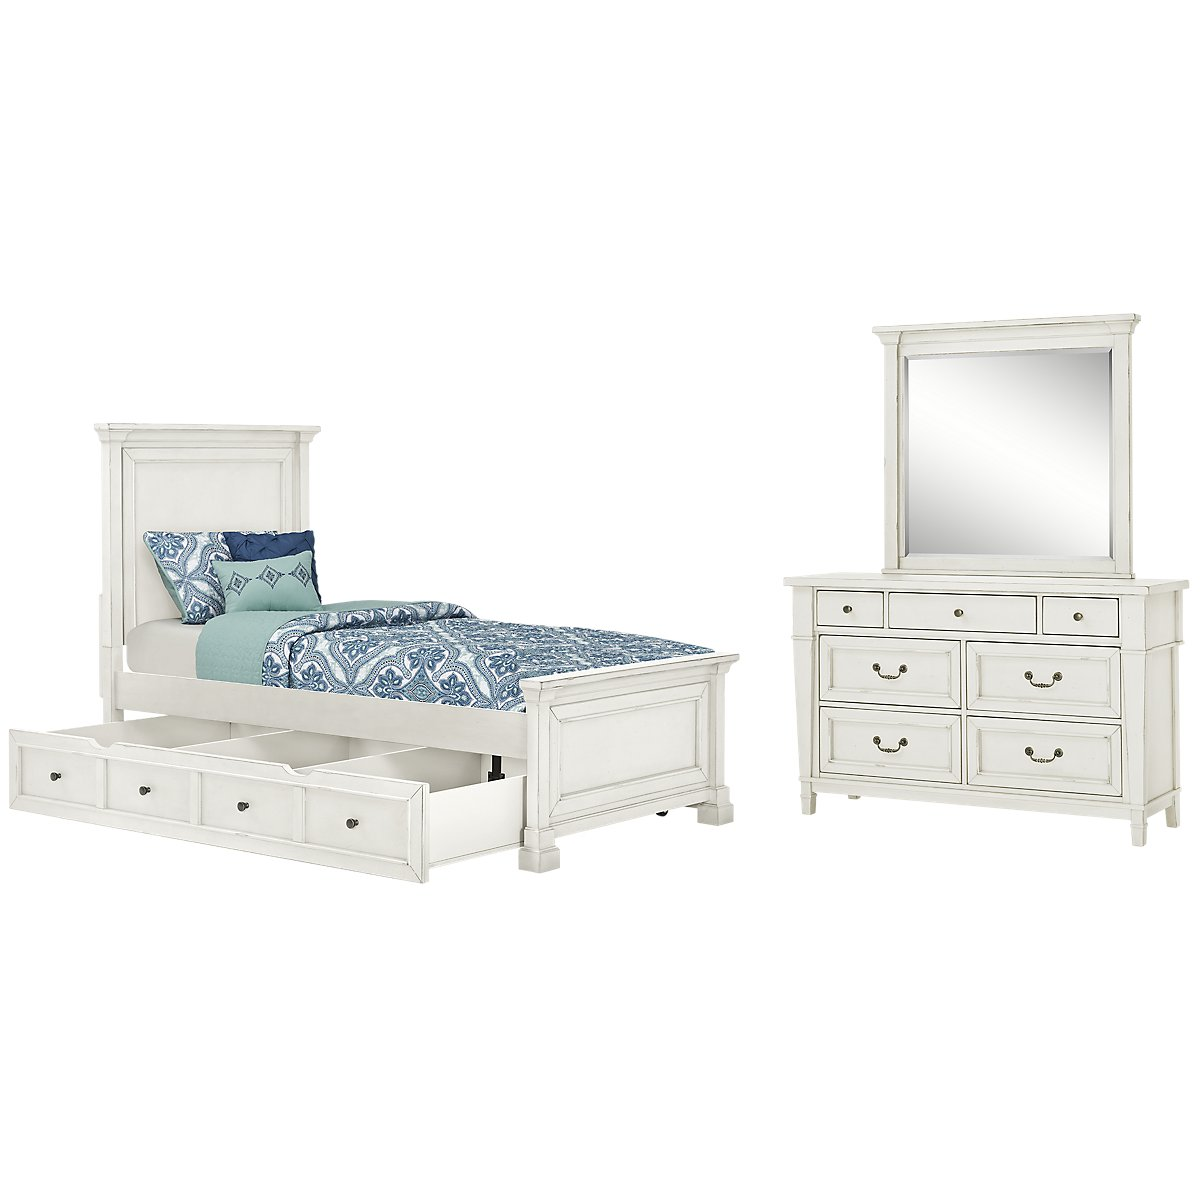 Stoney White Panel Storage Bedroom